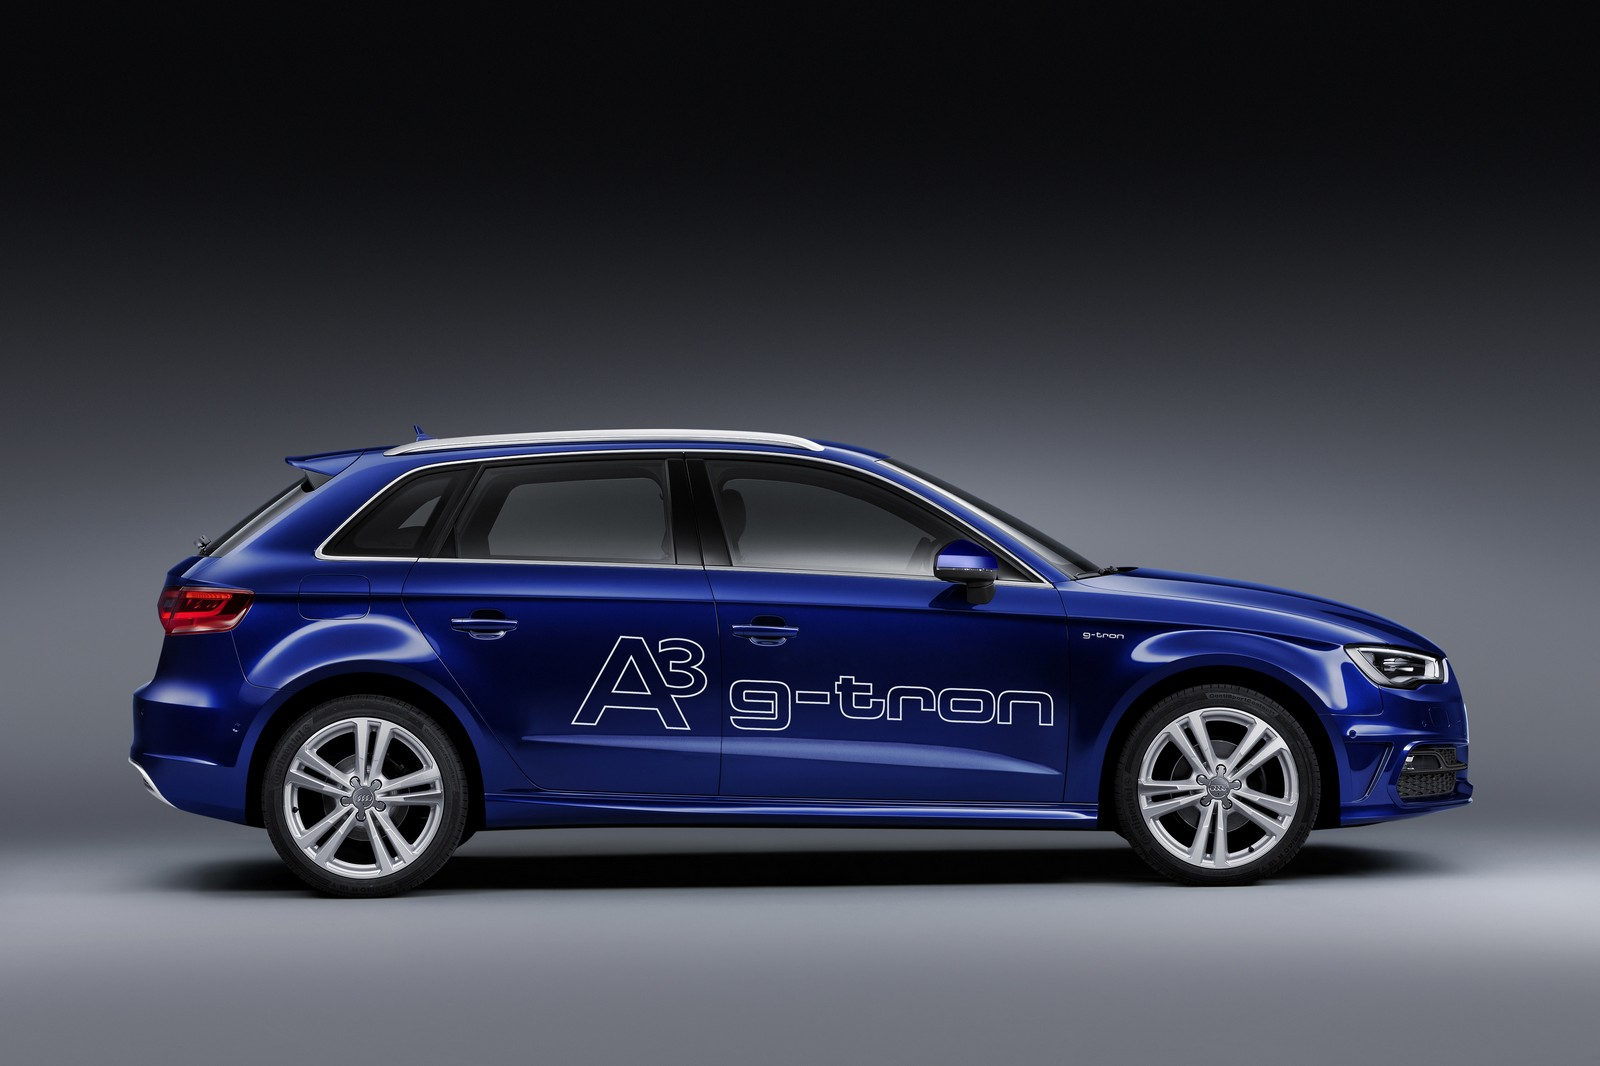 http://www.autoblog.gr/wp-content/gallery/audi-a3-sportback-g-tron/audi-a3-sportback-g-tron-2.jpg